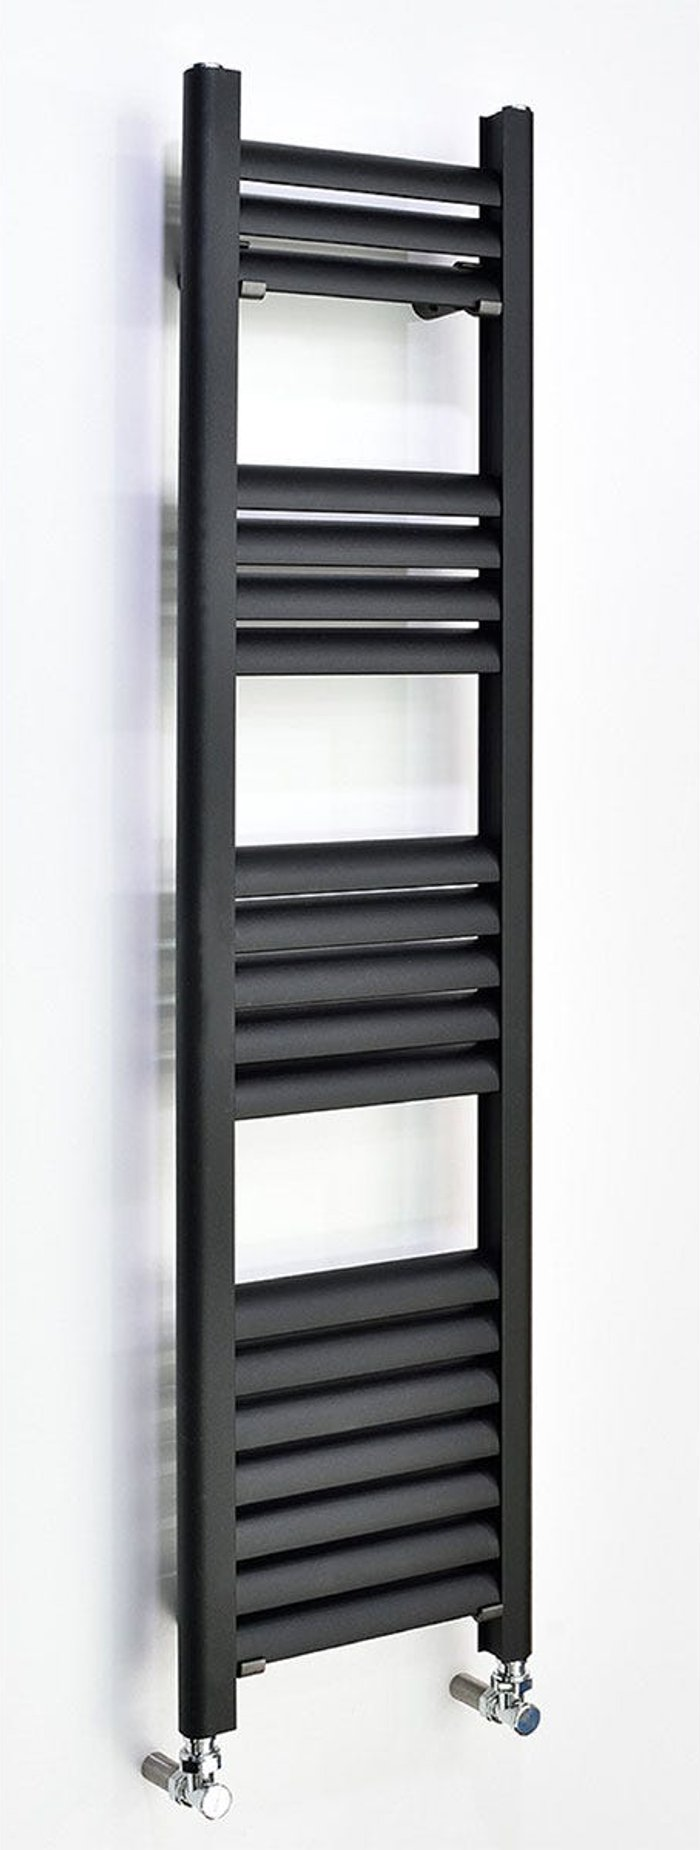 Towelrads Towelrads Accuro Korle Champagne 800mm x 500mm Aluminium T/Warmer - Anthracite